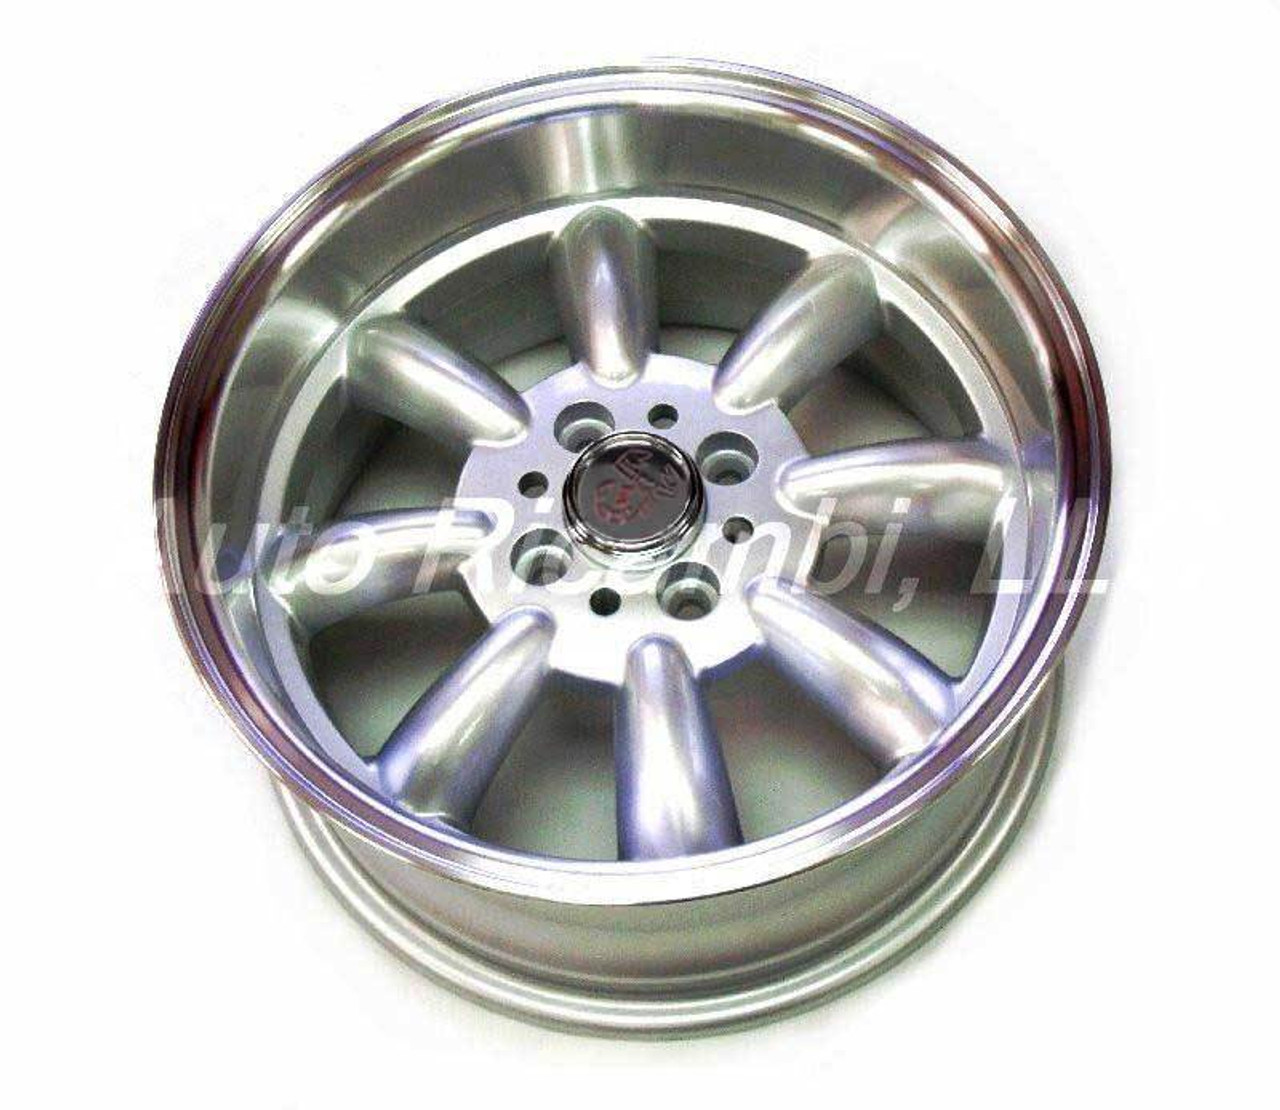 "Monza wheels 15"" x 7.5"", 15mm offset in silver  - Auto Ricambi FIAT 124 Spider, Sport Coupe, Spider 2000 and Pininfarina 1966-1985"